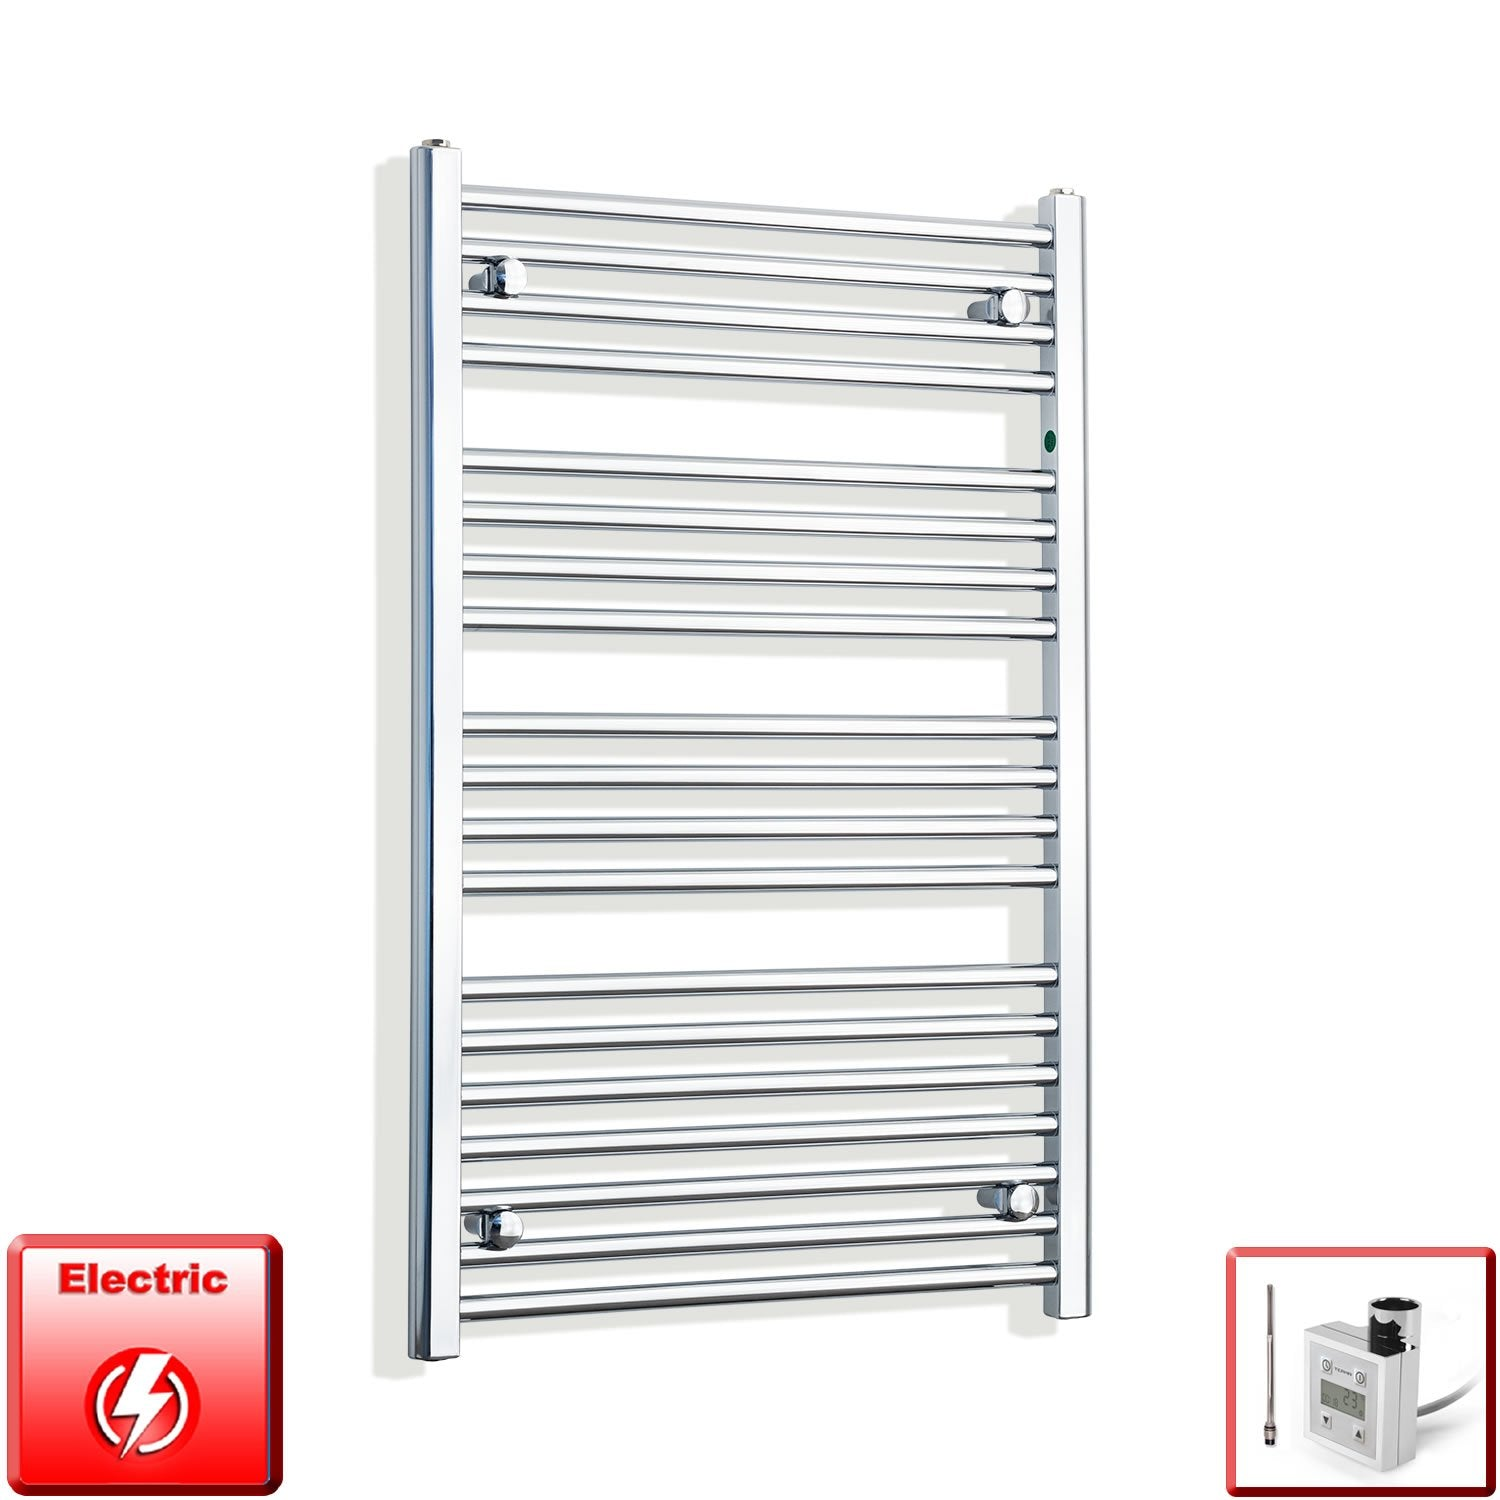 650mm Wide 1000mm High Flat Chrome Pre-Filled Electric Heated Towel Rail Radiator HTR,KTX-3 Thermostatic Element